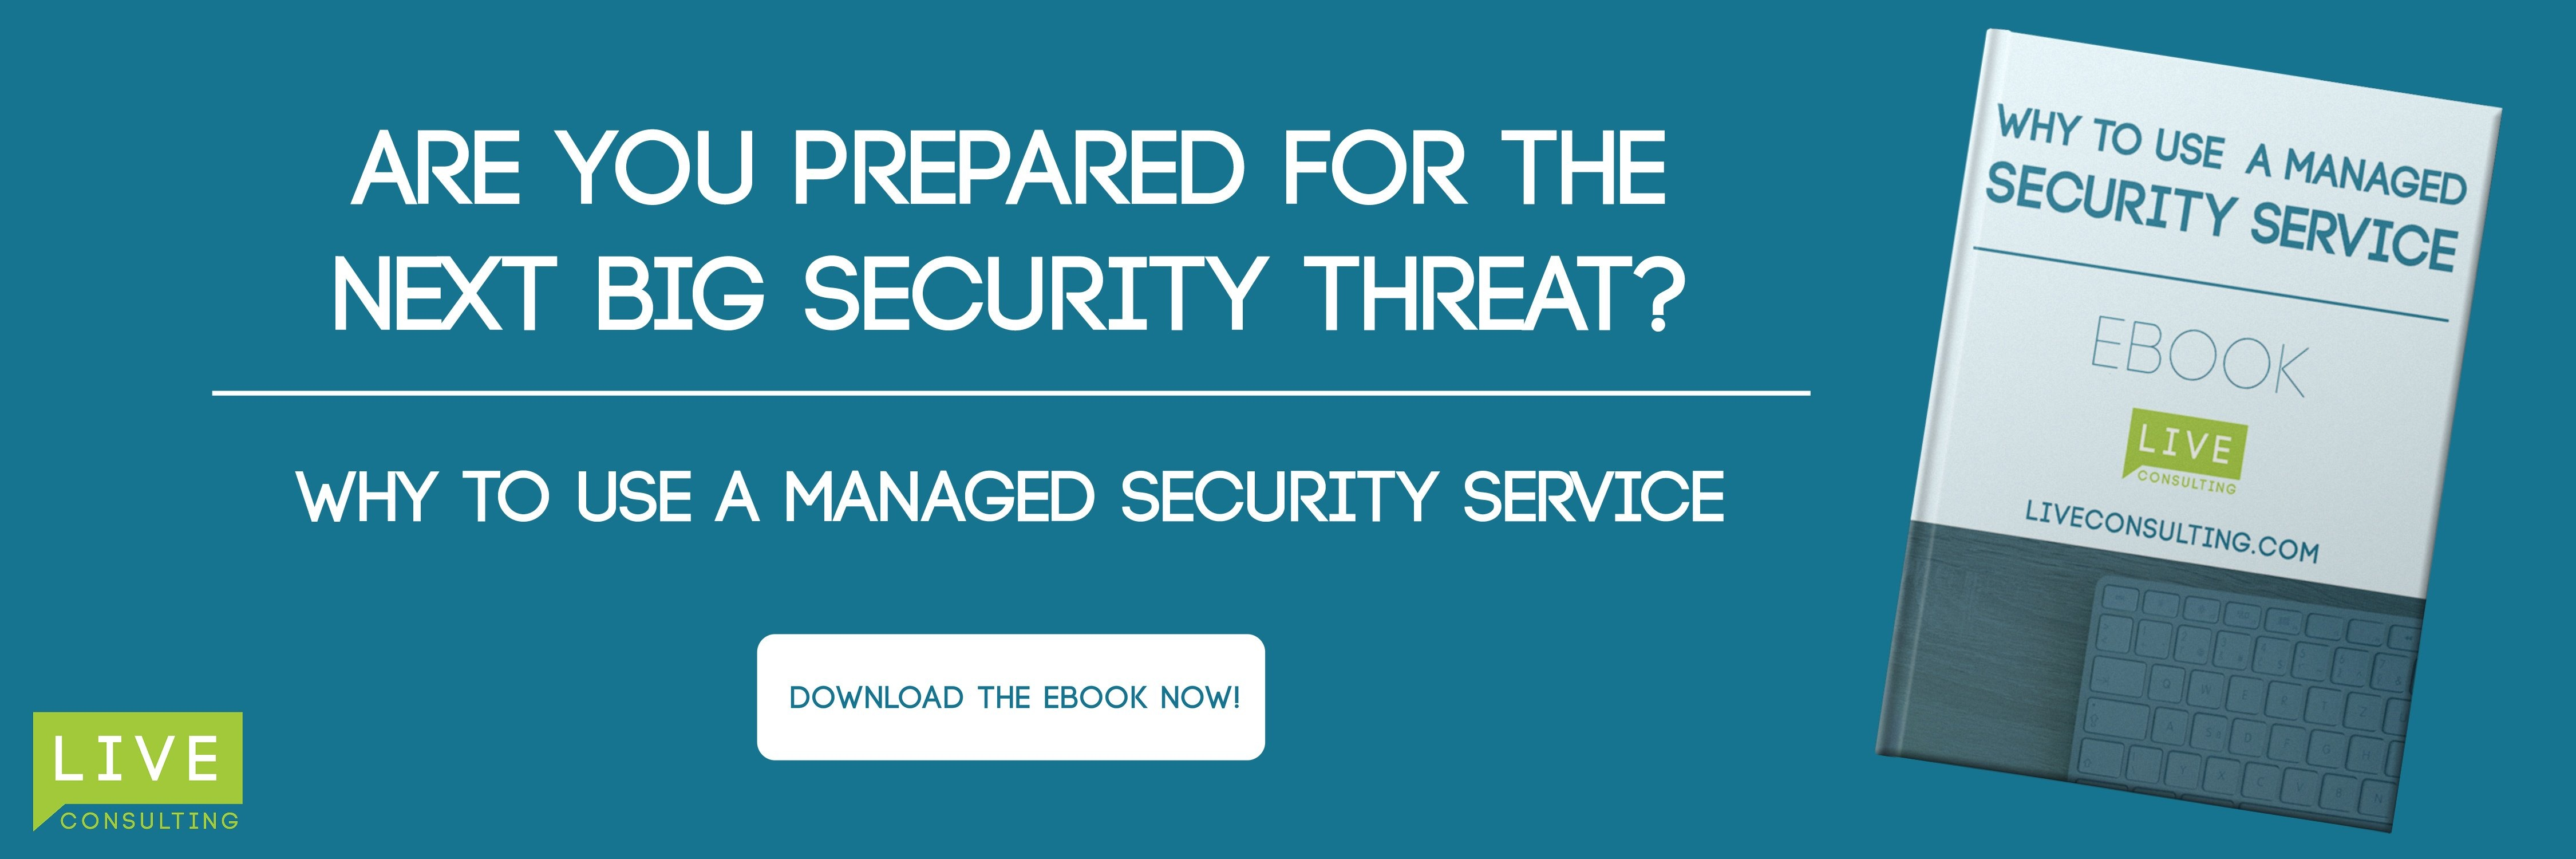 Why To Use a Managed Security Service